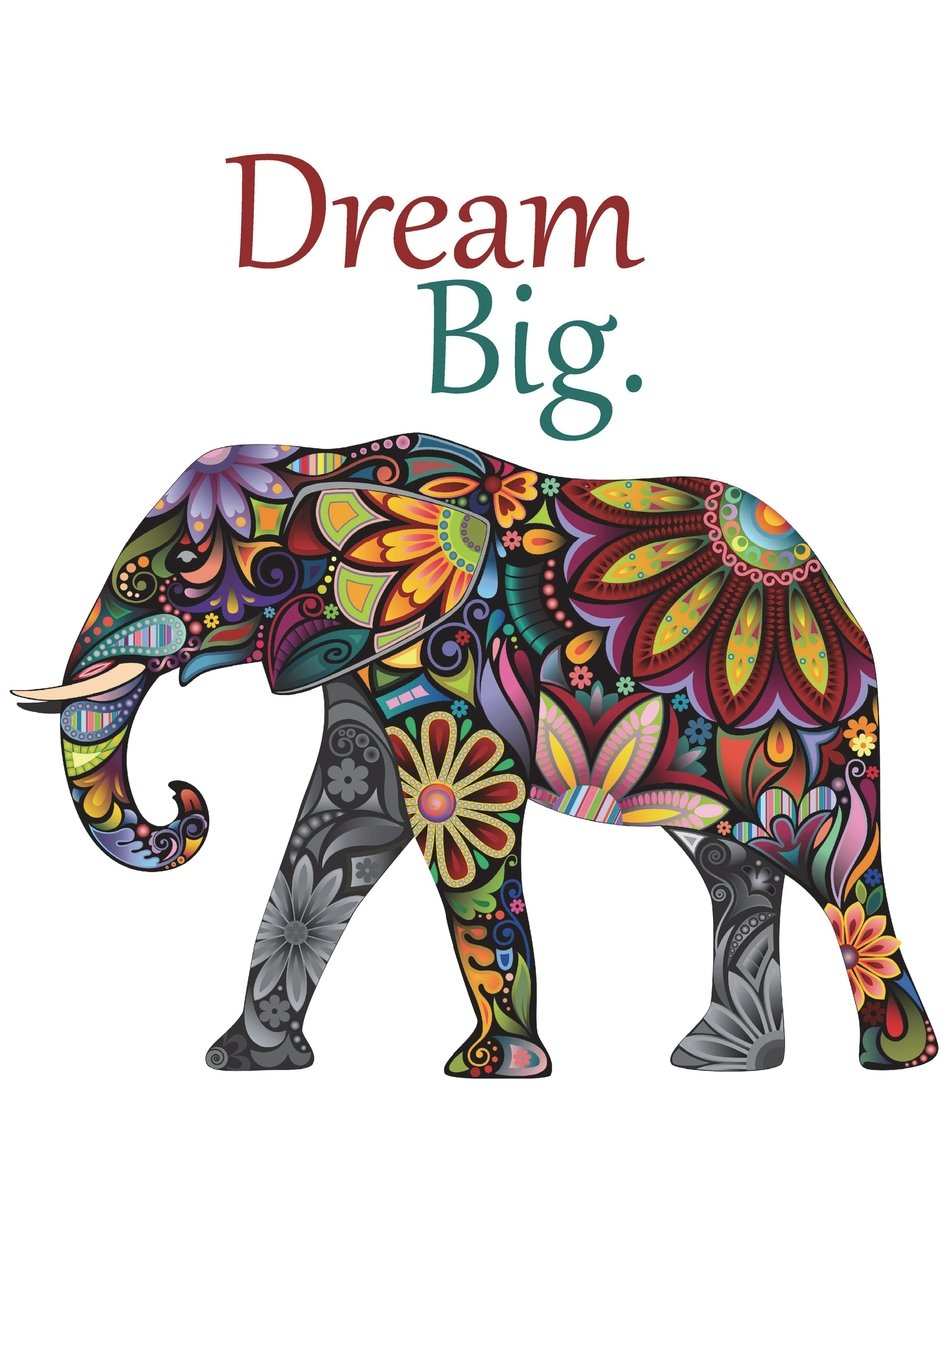 Dream Big Elephant Notebook Or Journal With Inspirational Quote For